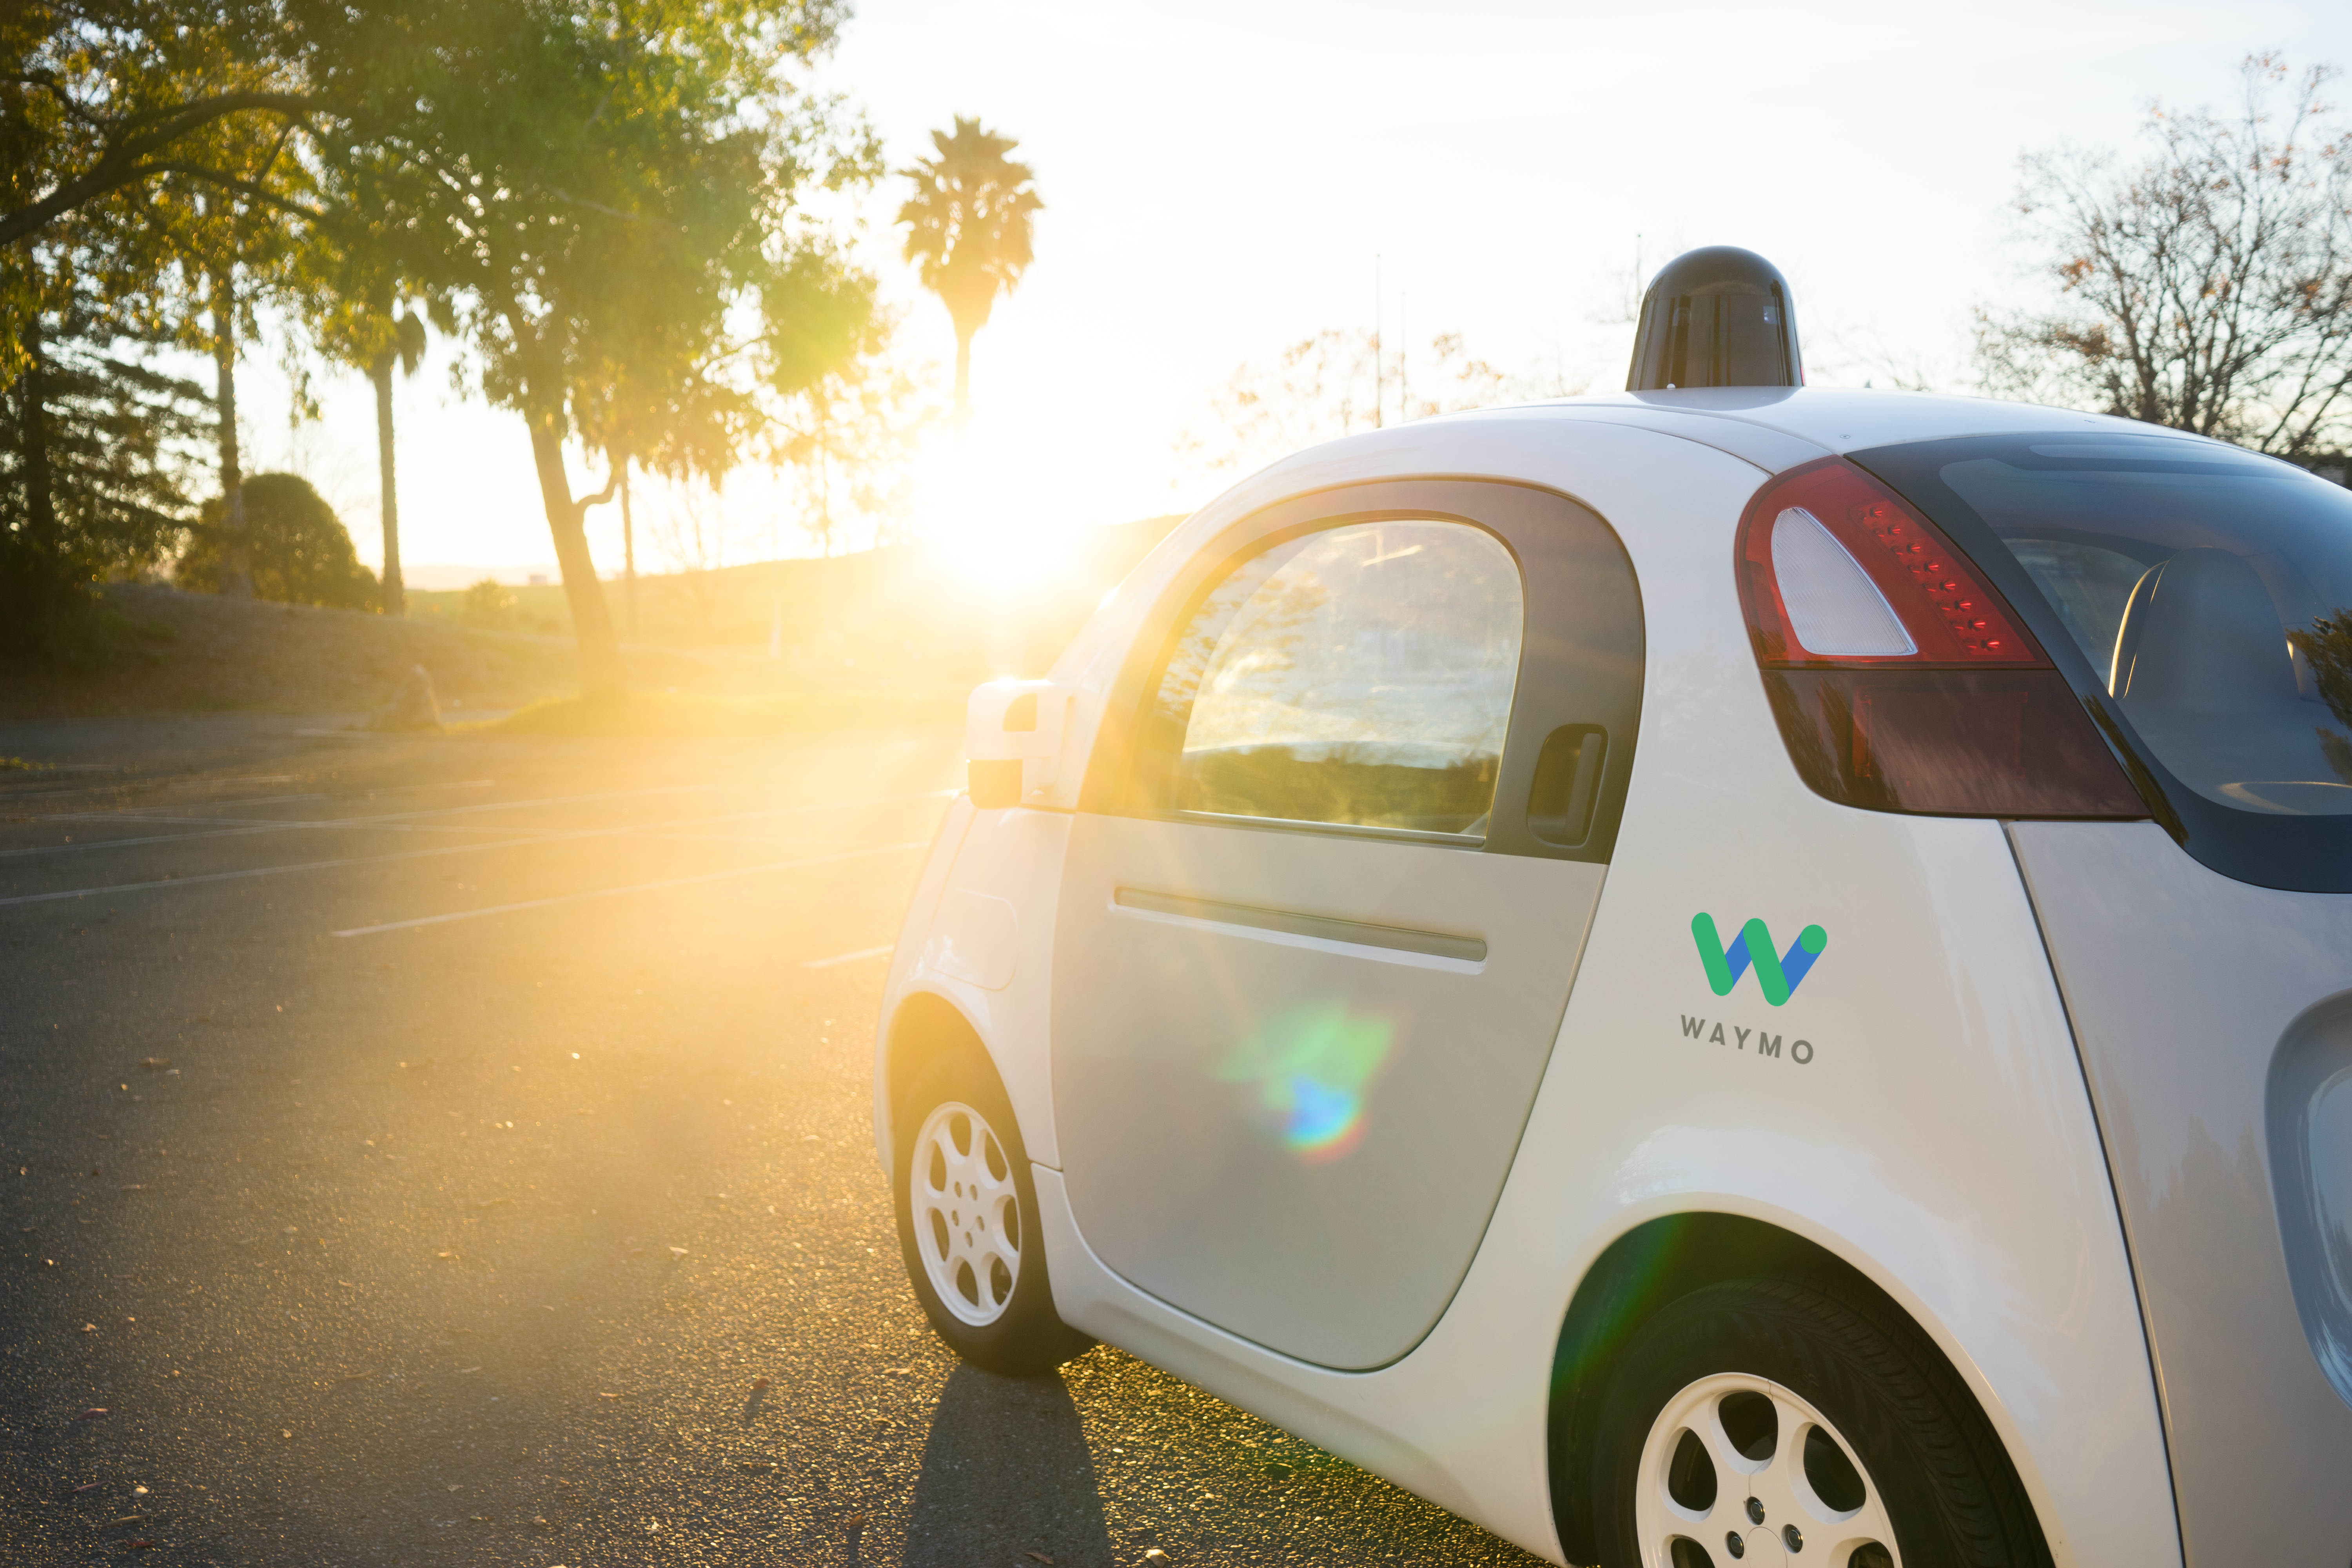 After Early Tests, Google Is Focused On Fully Self-Driving Cars